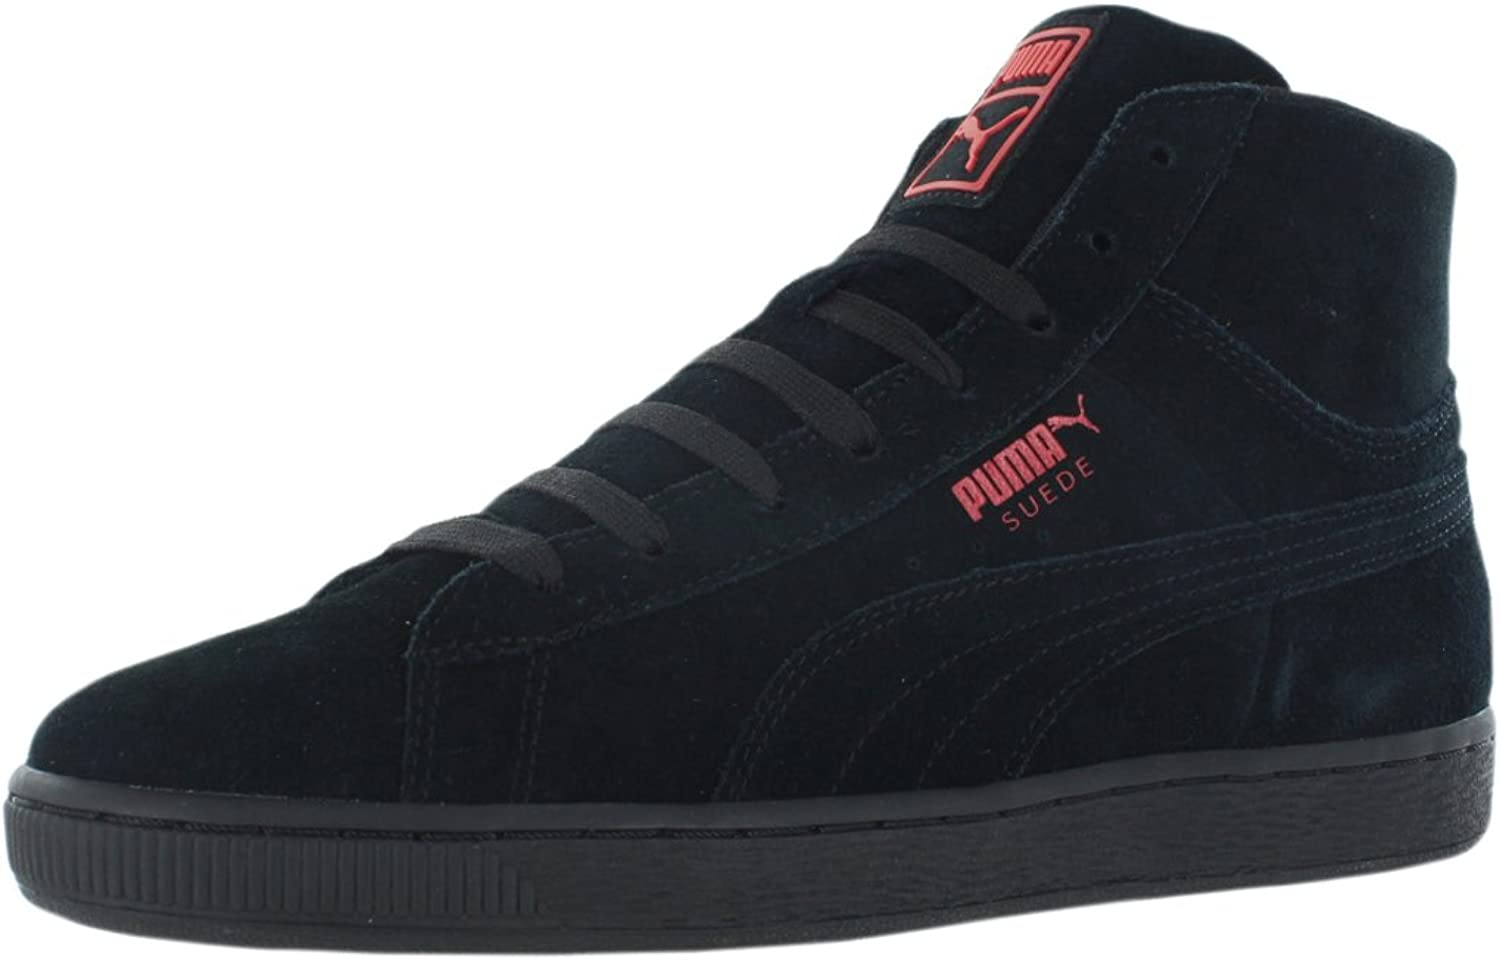 PUMA Suede Mid Wog Men's Sneakers